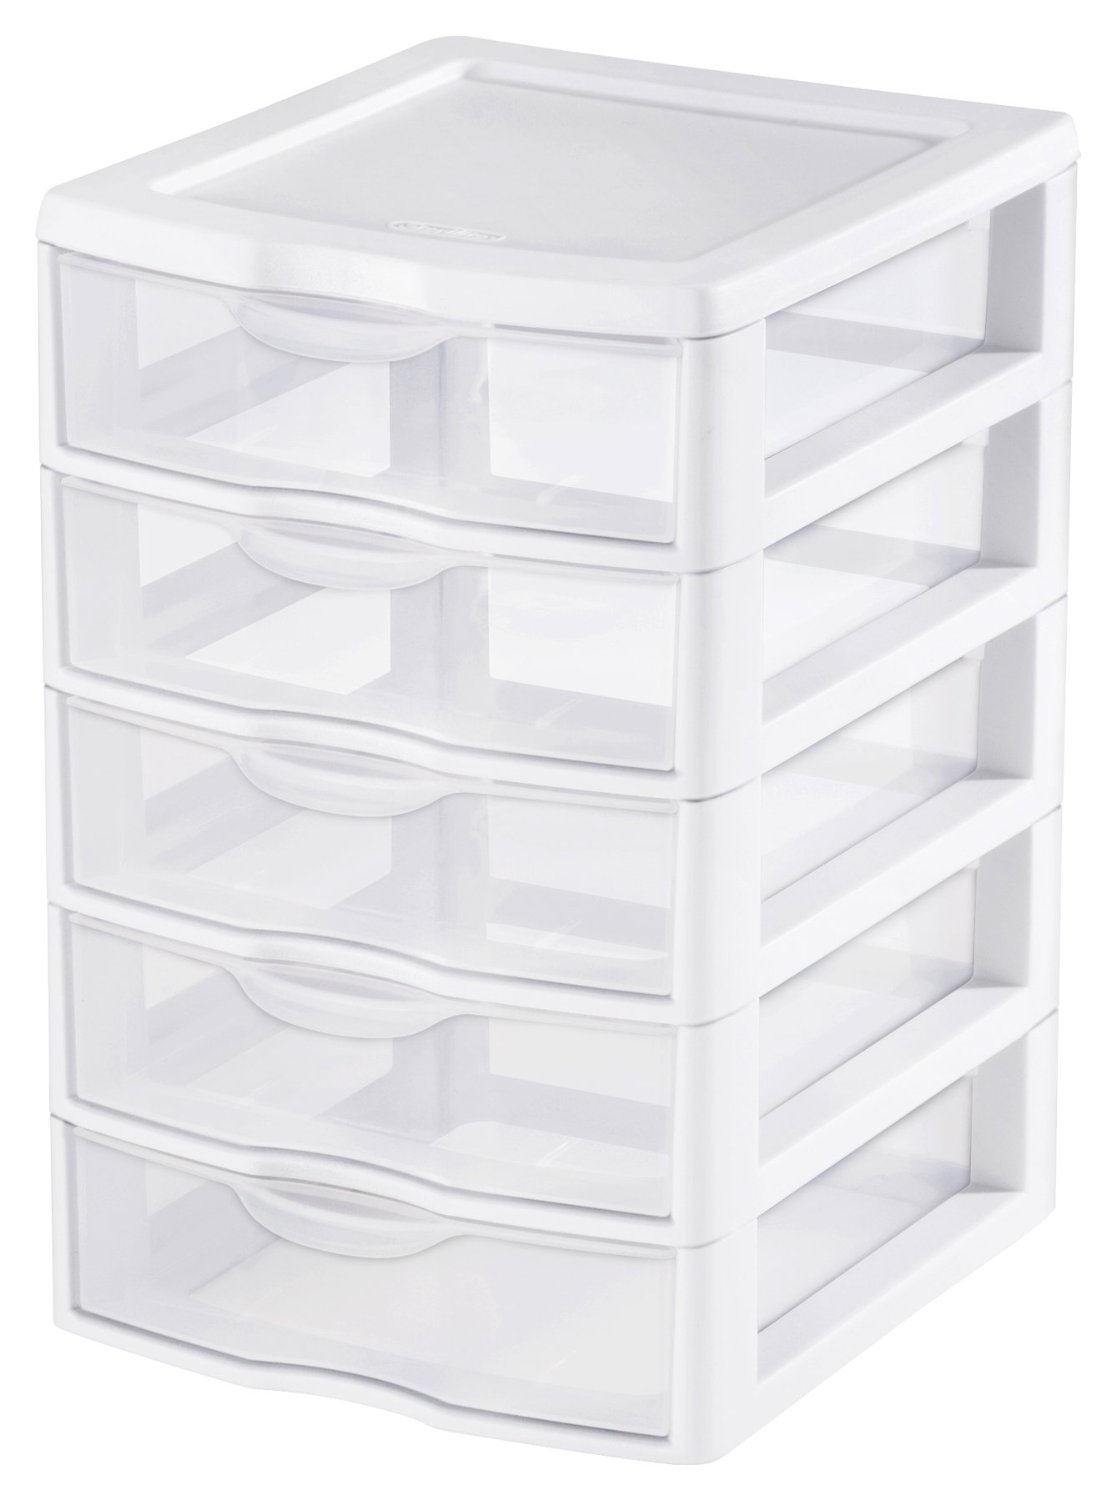 Sterilite Small 5-Drawer See-Through Organizer, 4-Pack